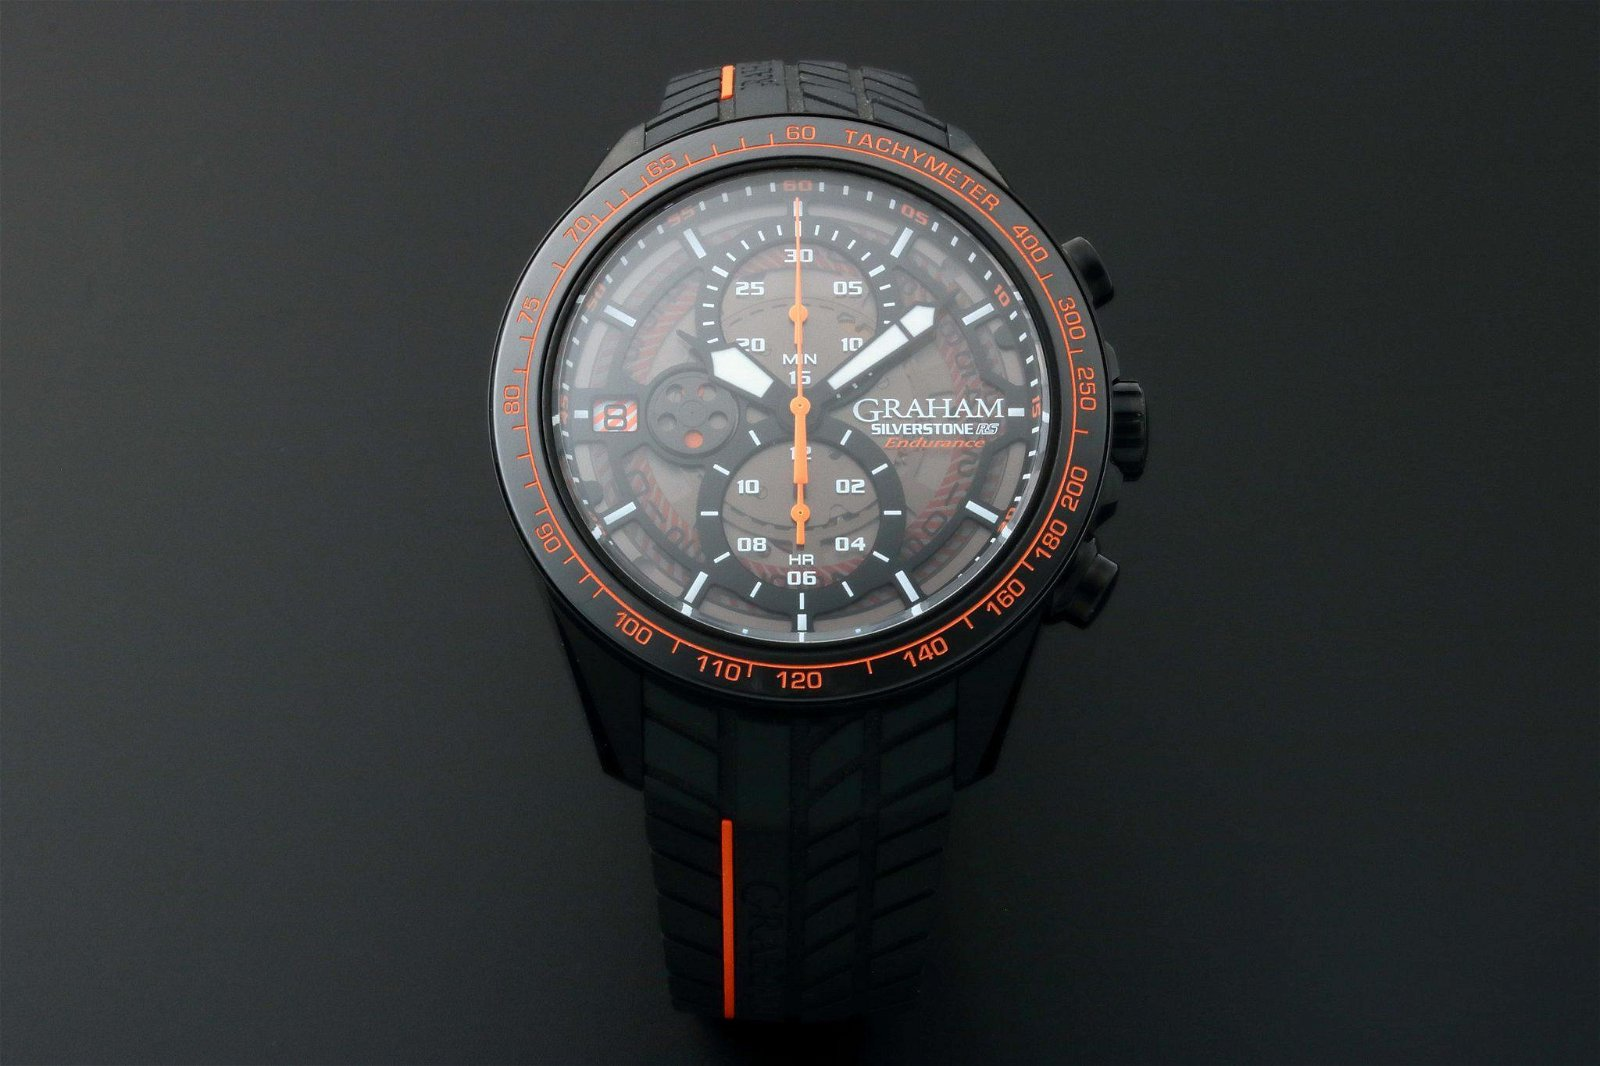 Graham Silverstone RS Endurance Chronograph Watch